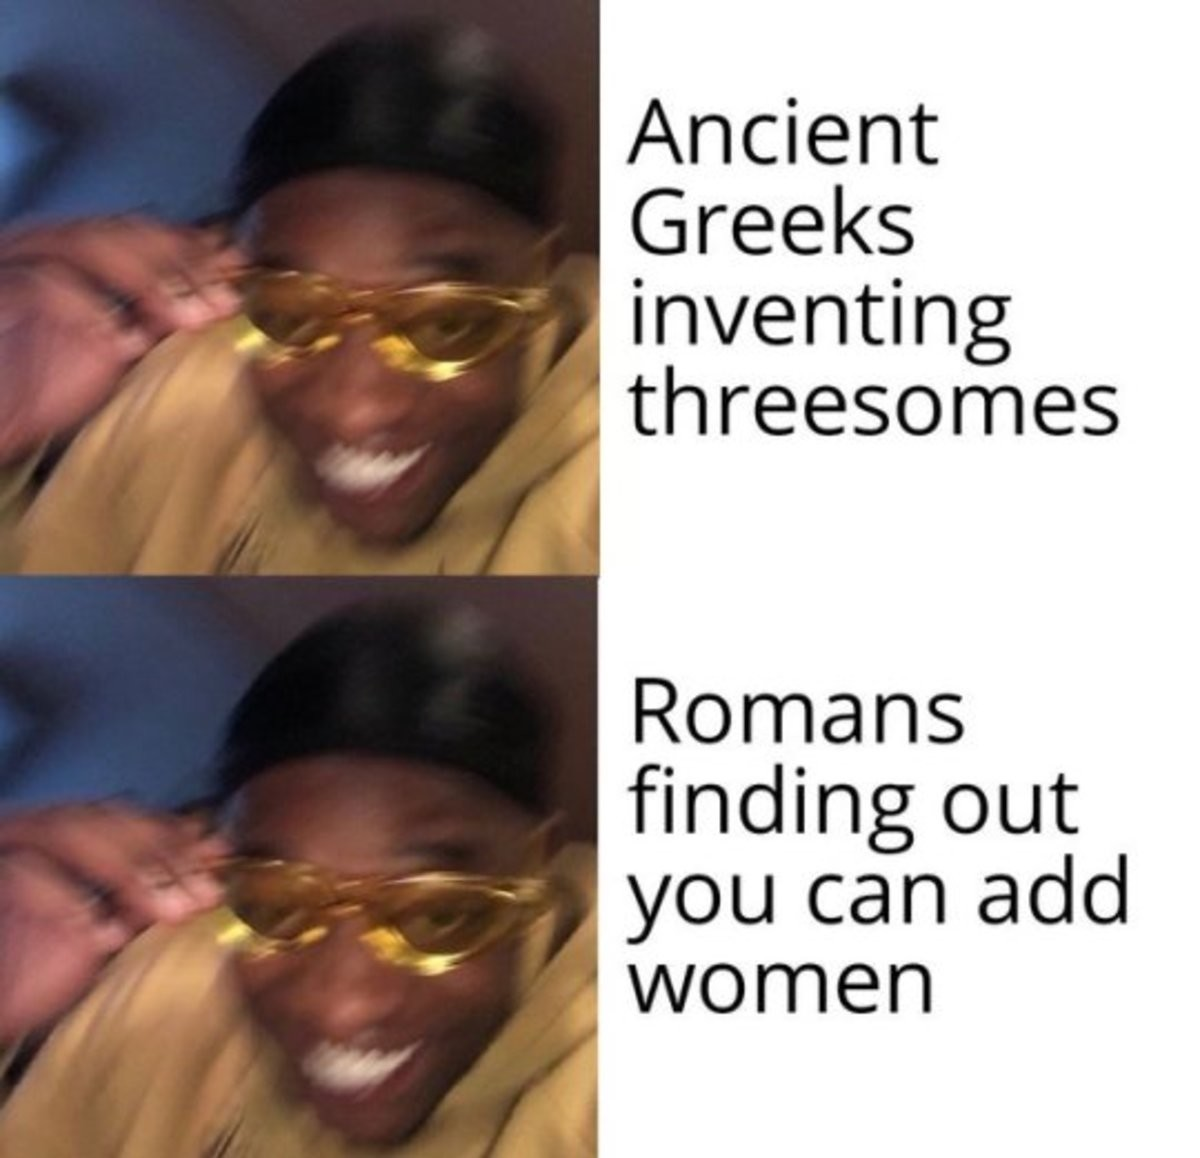 Threesomes. .. To be fair the Romans liked gay sex too Most of FJ does as well